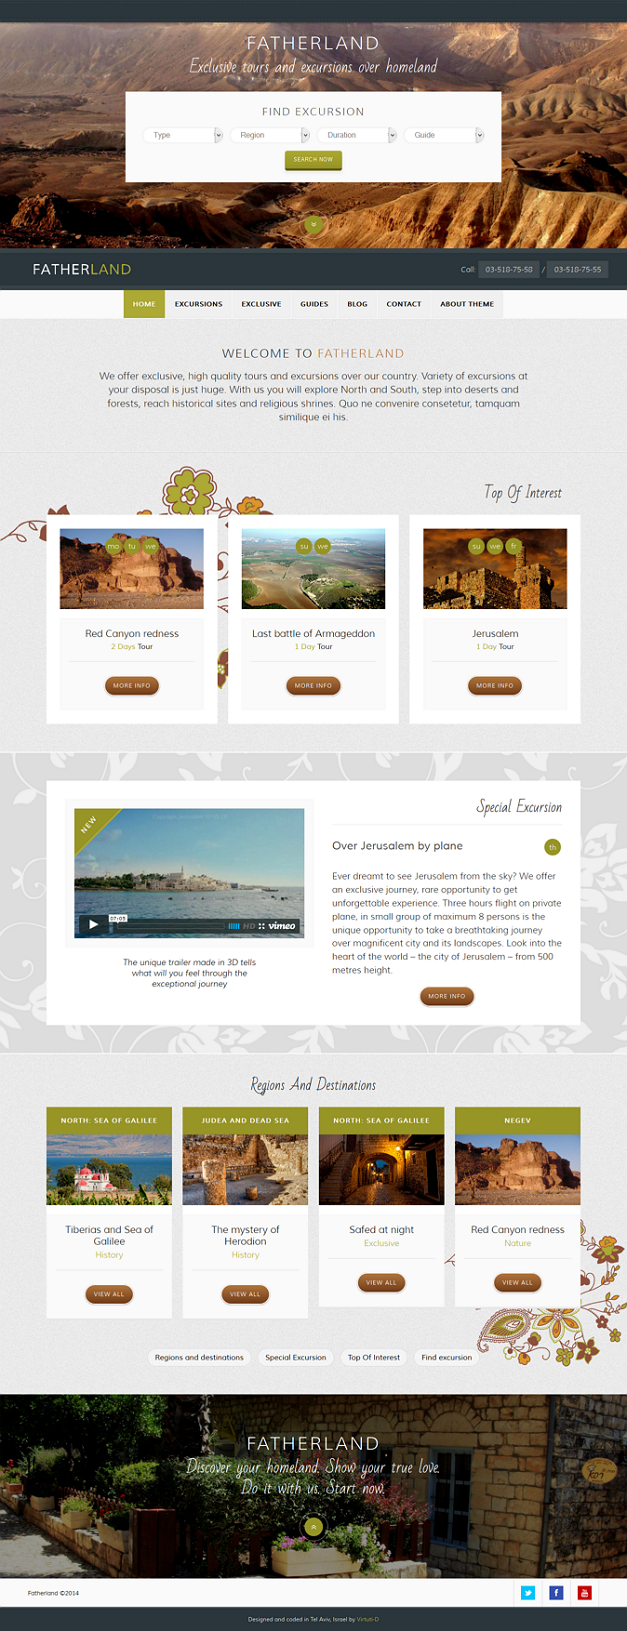 Travel Excursions and Guides Website Template